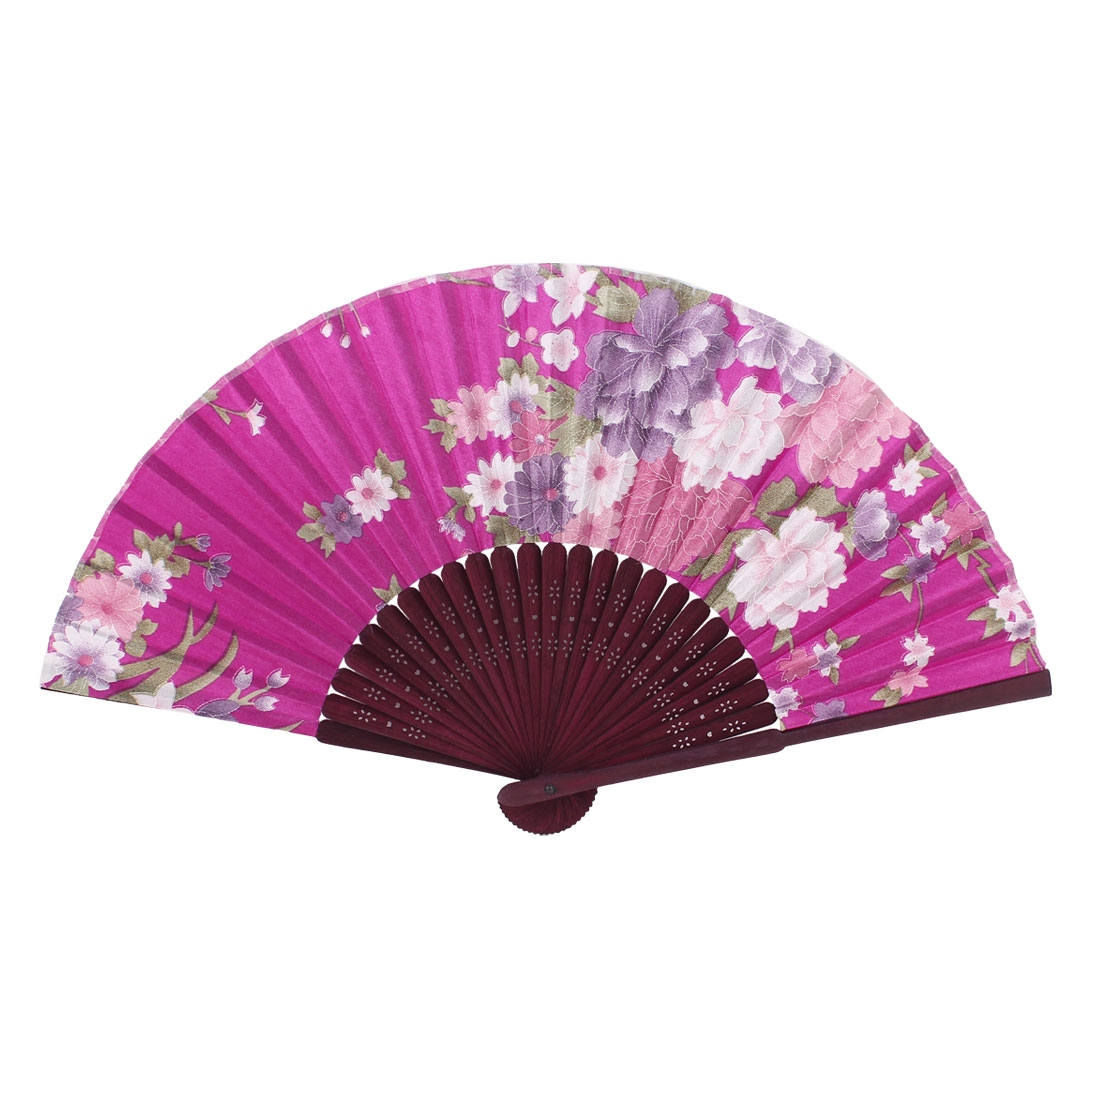 Home Decor Hollow Out Frame Floral Pattern Portable Hand Fan Fuchsia Brown